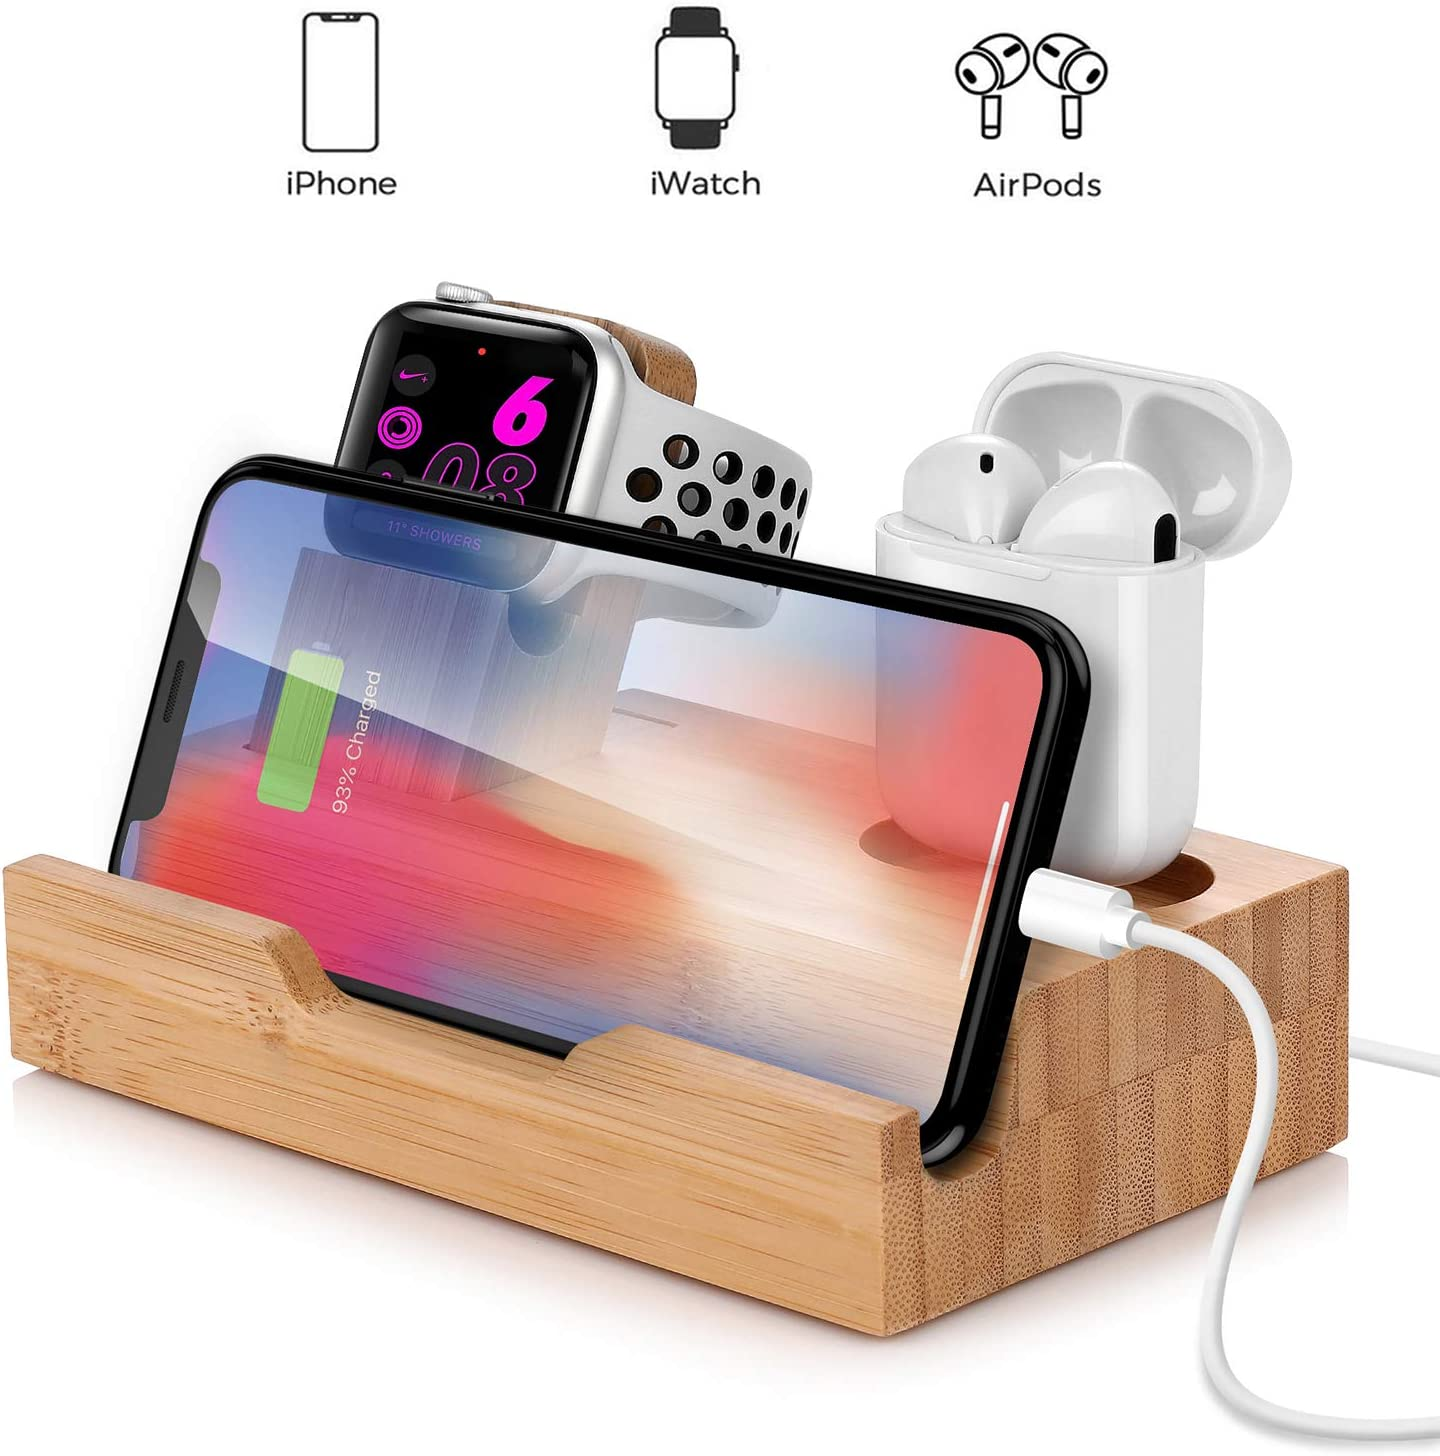 USB Charging Station for Apple Products,15 W Fast Charger Bamboo Dock Organizer Compatible with iPhone 11 Pro Max / 11 / XS / 8,Charging Stand Replacement for Apple Watch Series 4/3/2/1 and AirPods